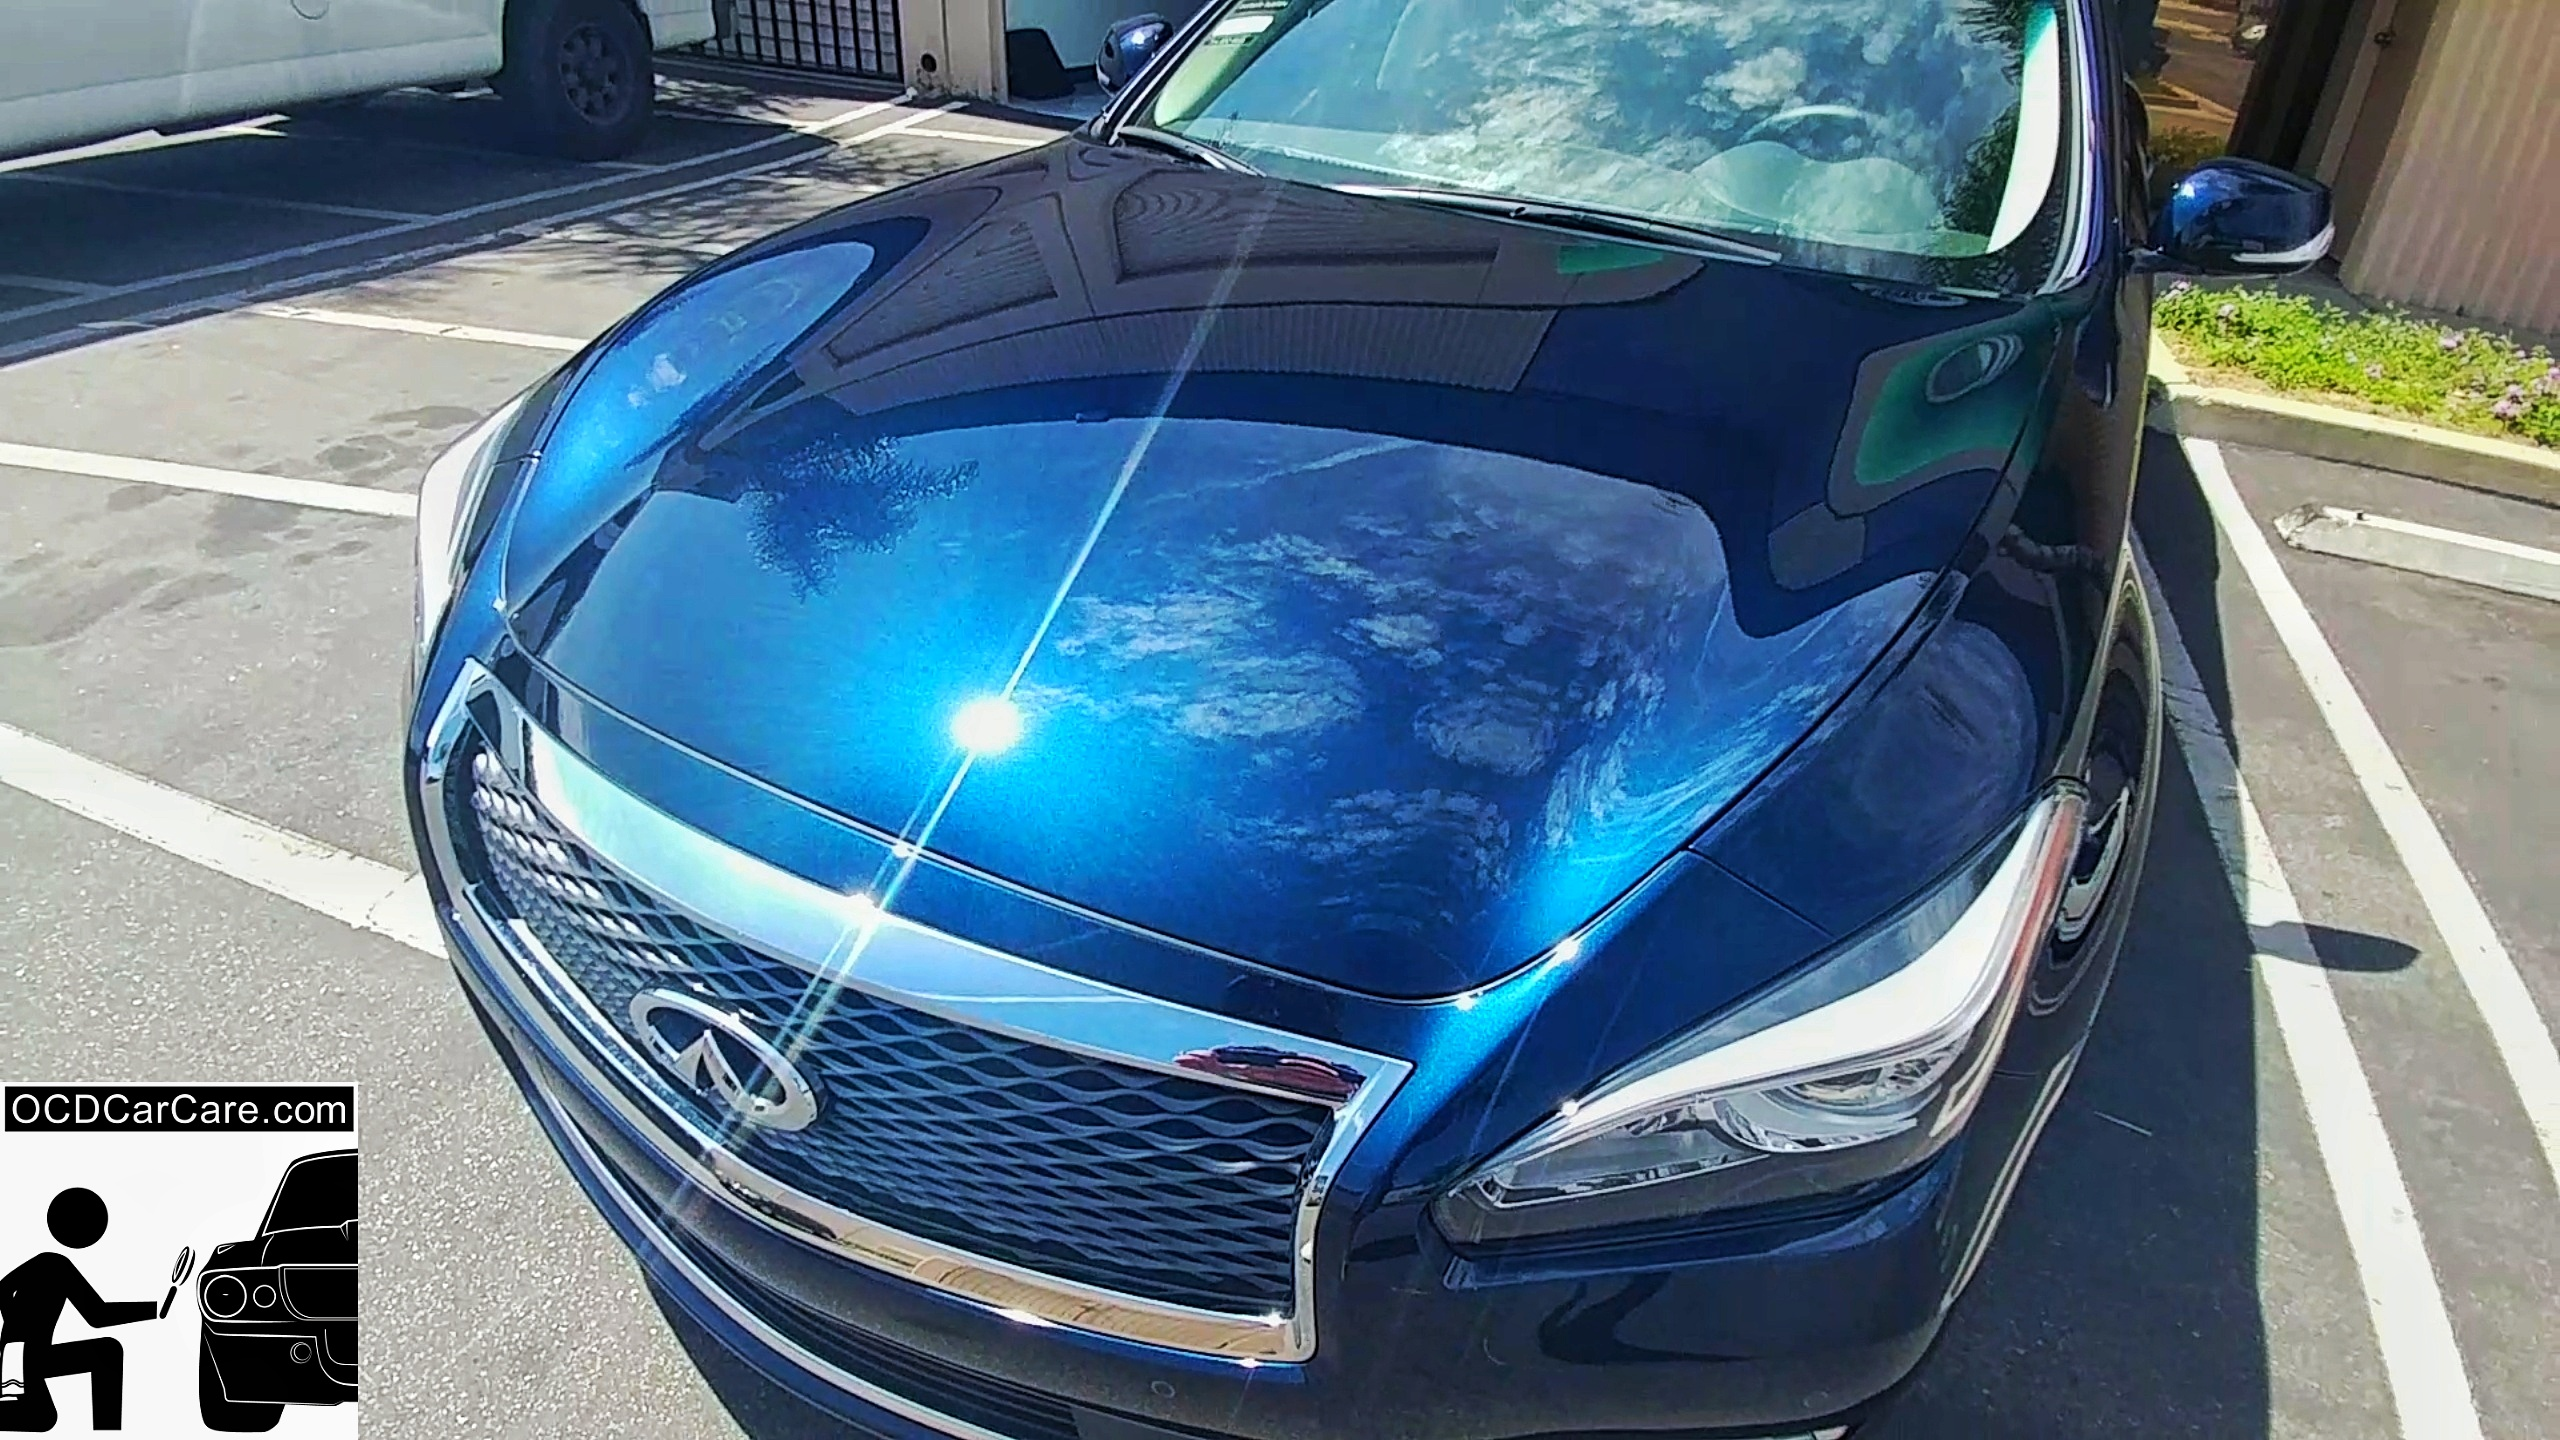 This Infinity Q70 Reflects everything in sight with insane gloss after OCDCarCare Long Beach Paint Correction & FeynLab Ceramic Nano Pro Coating Service